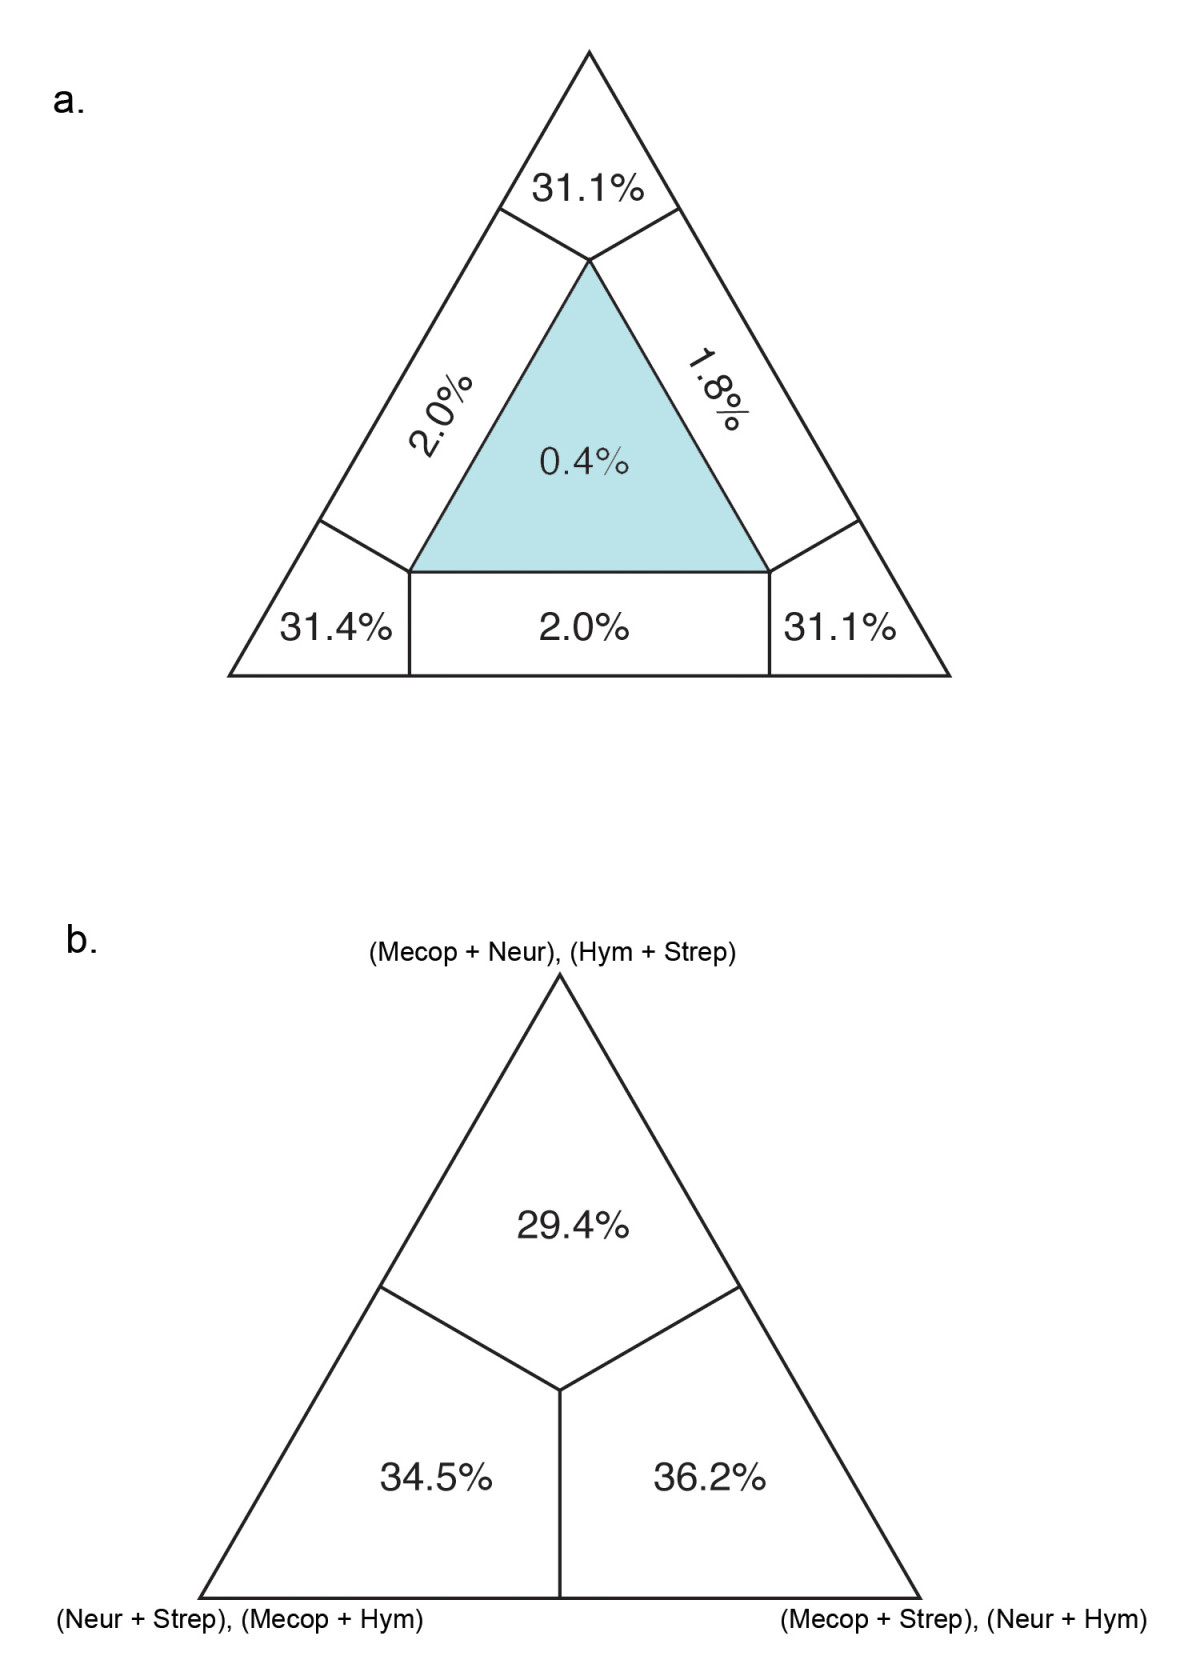 https://static-content.springer.com/image/art%3A10.1186%2F1741-7007-7-34/MediaObjects/12915_2009_Article_242_Fig3_HTML.jpg